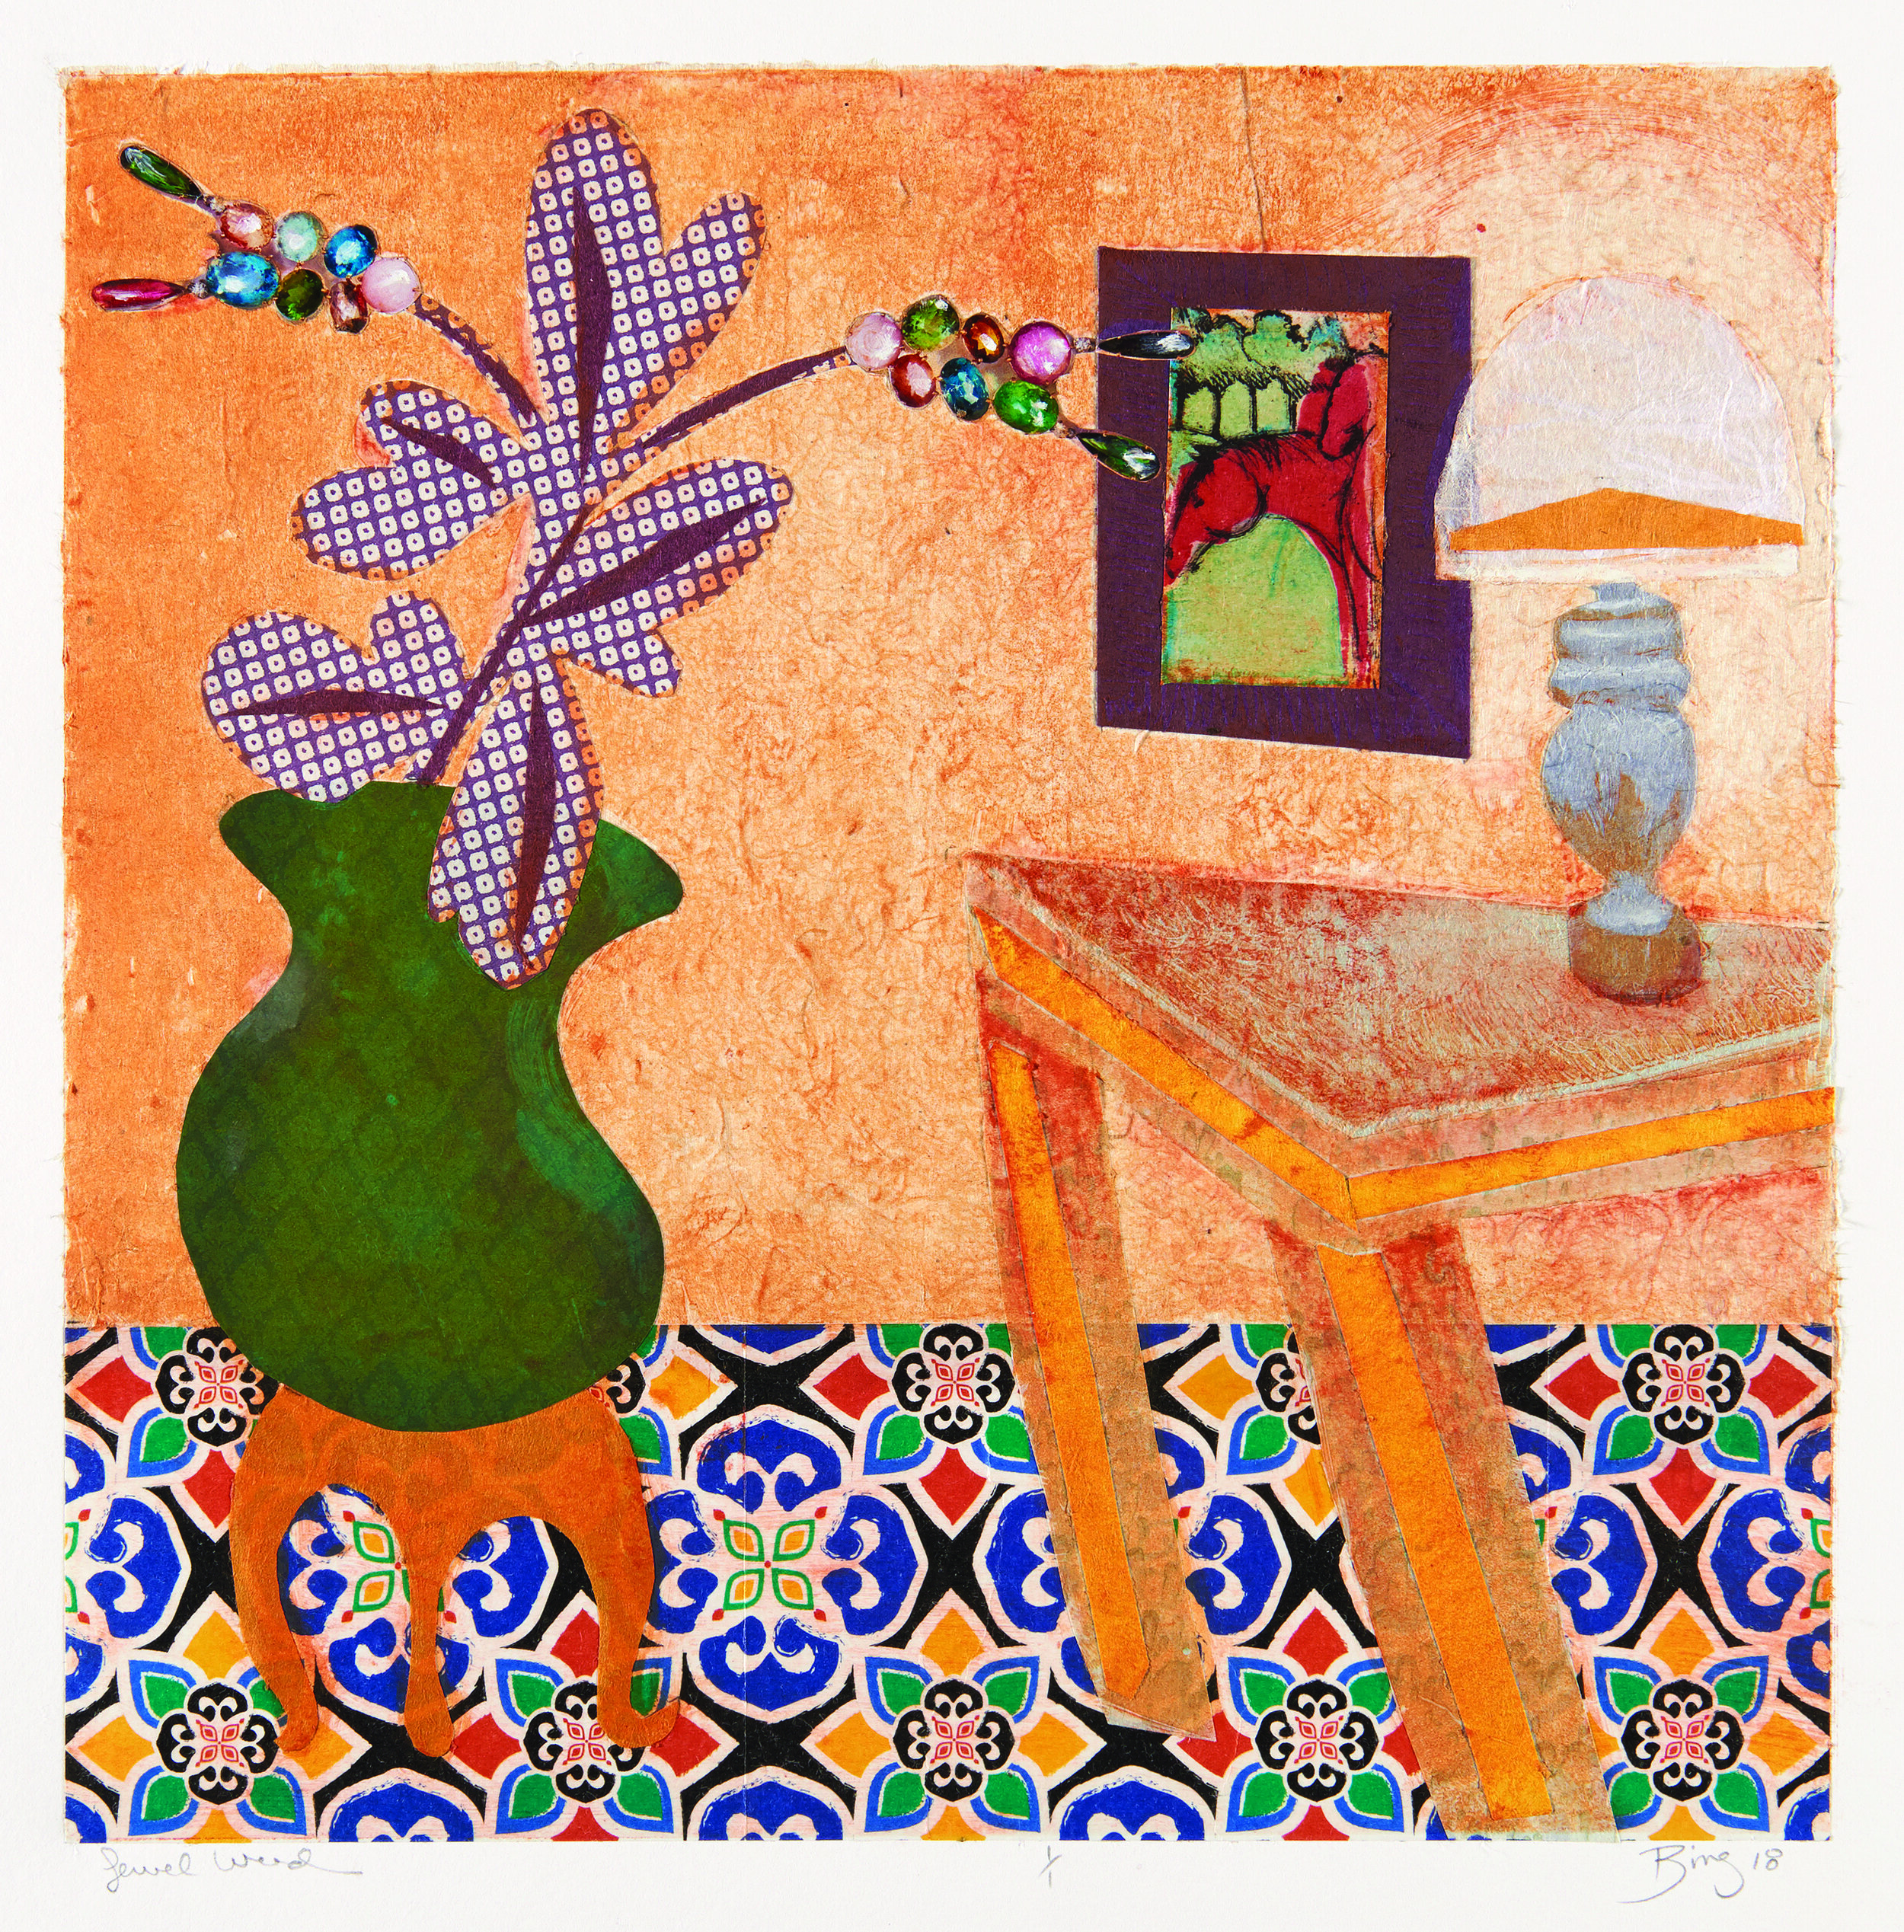 Monotype print of a yellow room with textured floors, flower and vase, tables, lamps